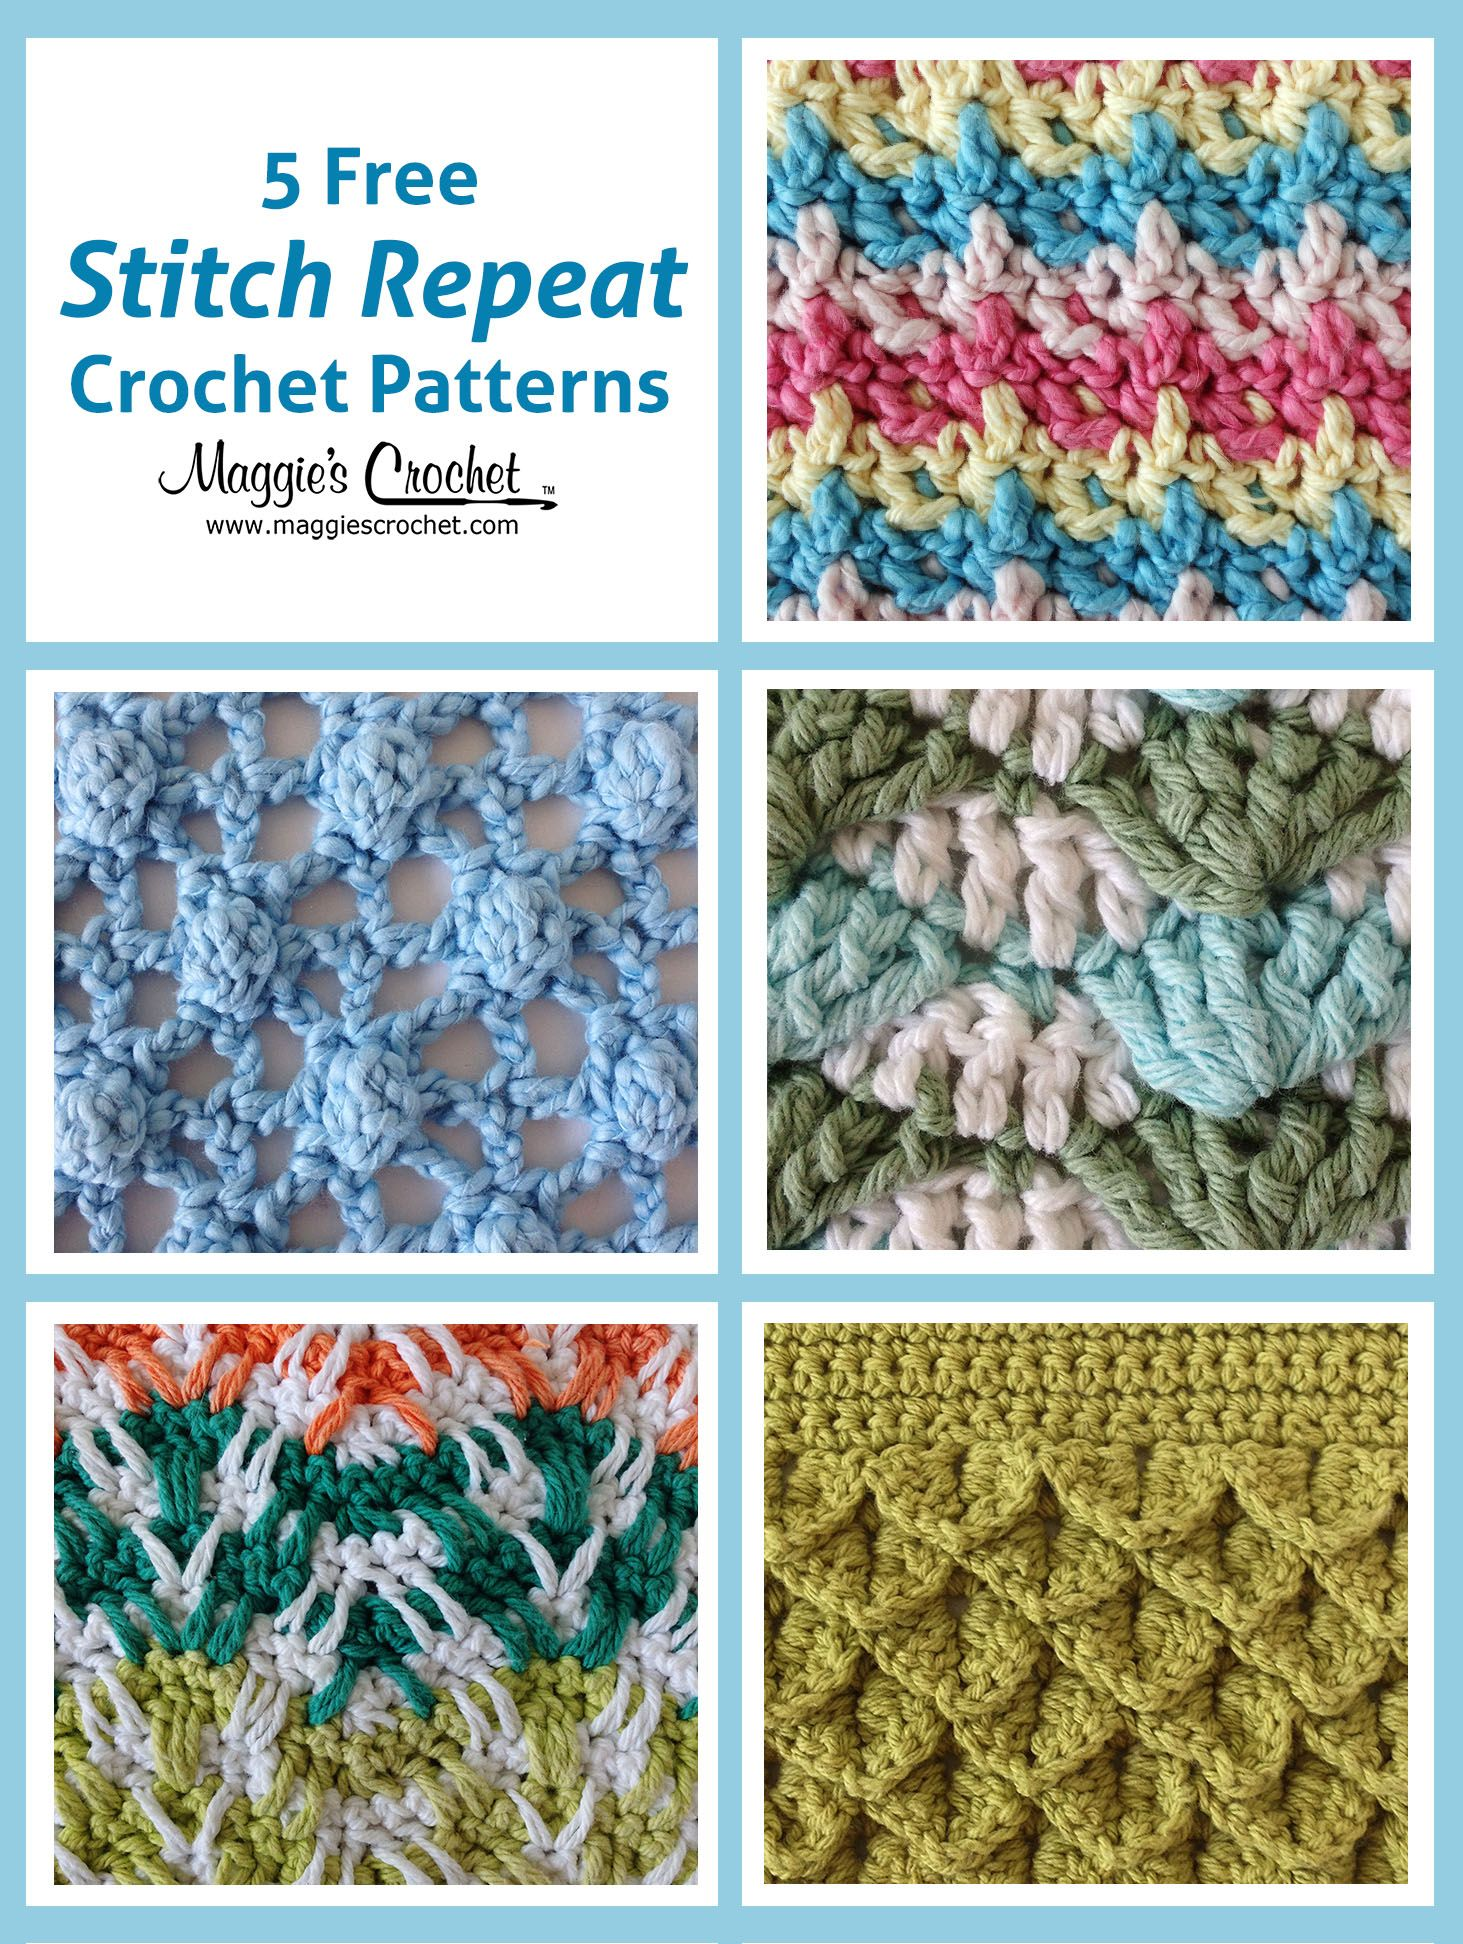 This week we are please to present five free stitch patterns crochet stitches patterns bankloansurffo Choice Image